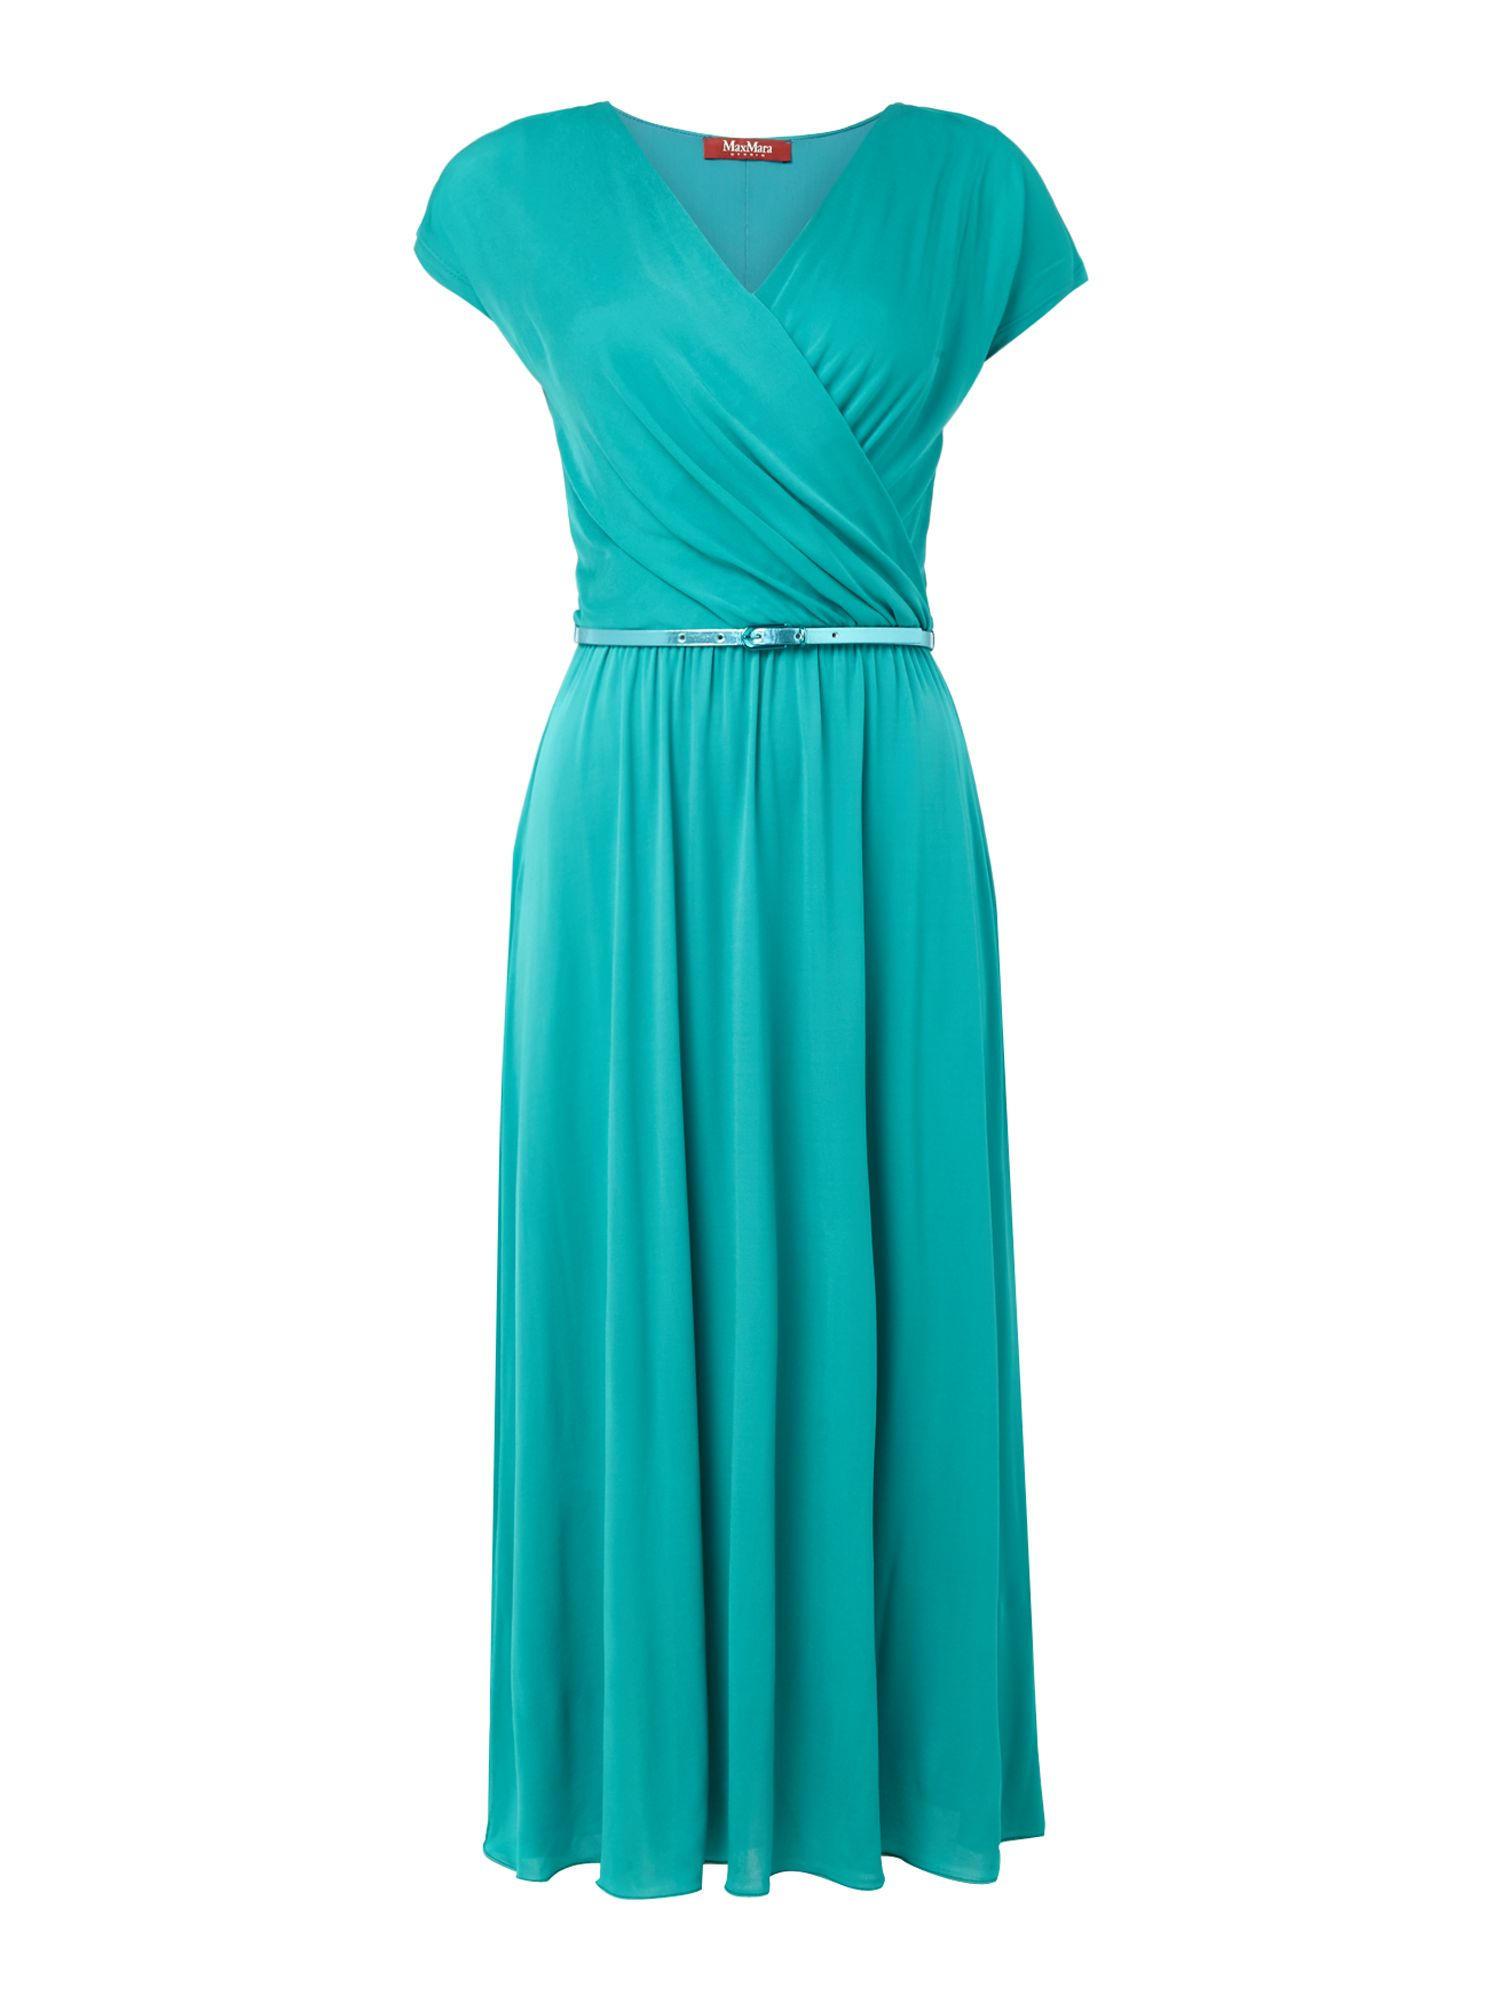 Max Mara Studio ARIANO short sleeve belted v neck dress, Turquoise